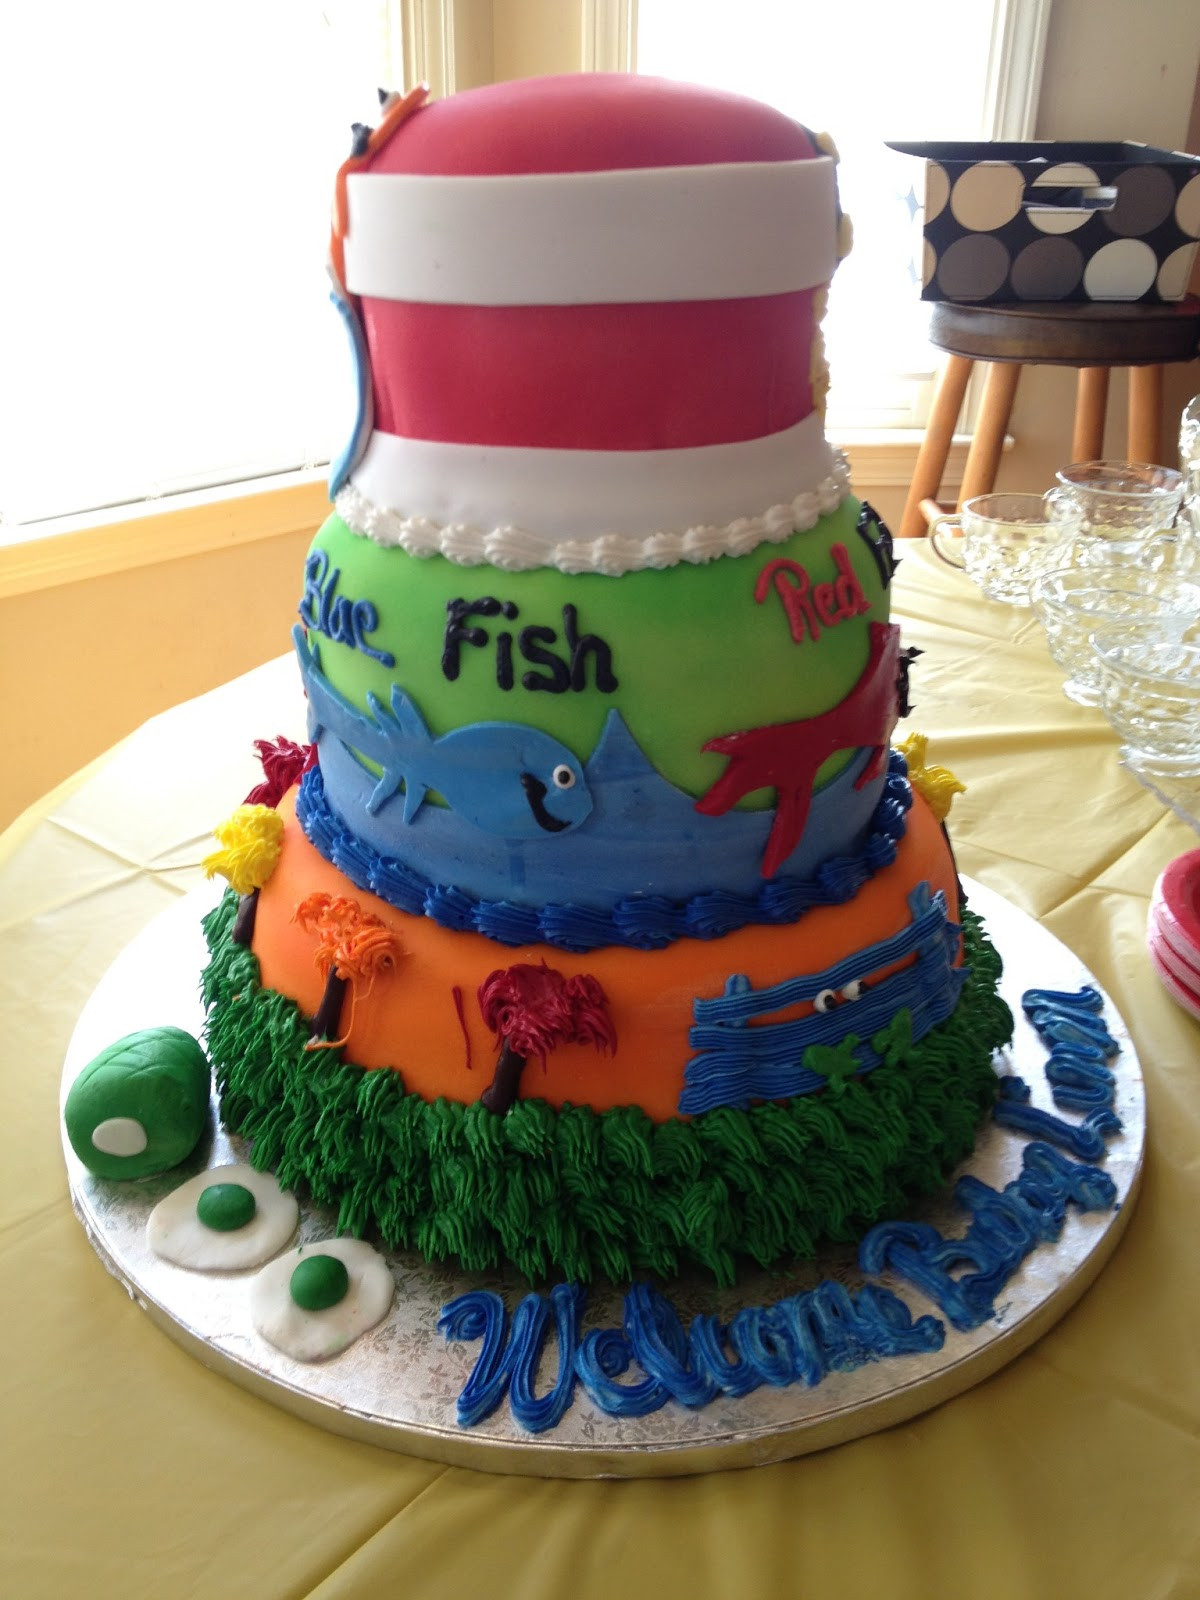 Best ideas about Sam Club Bakery Birthday Cake Designs . Save or Pin Sams Club Bakery Cake Ideas and Designs Now.